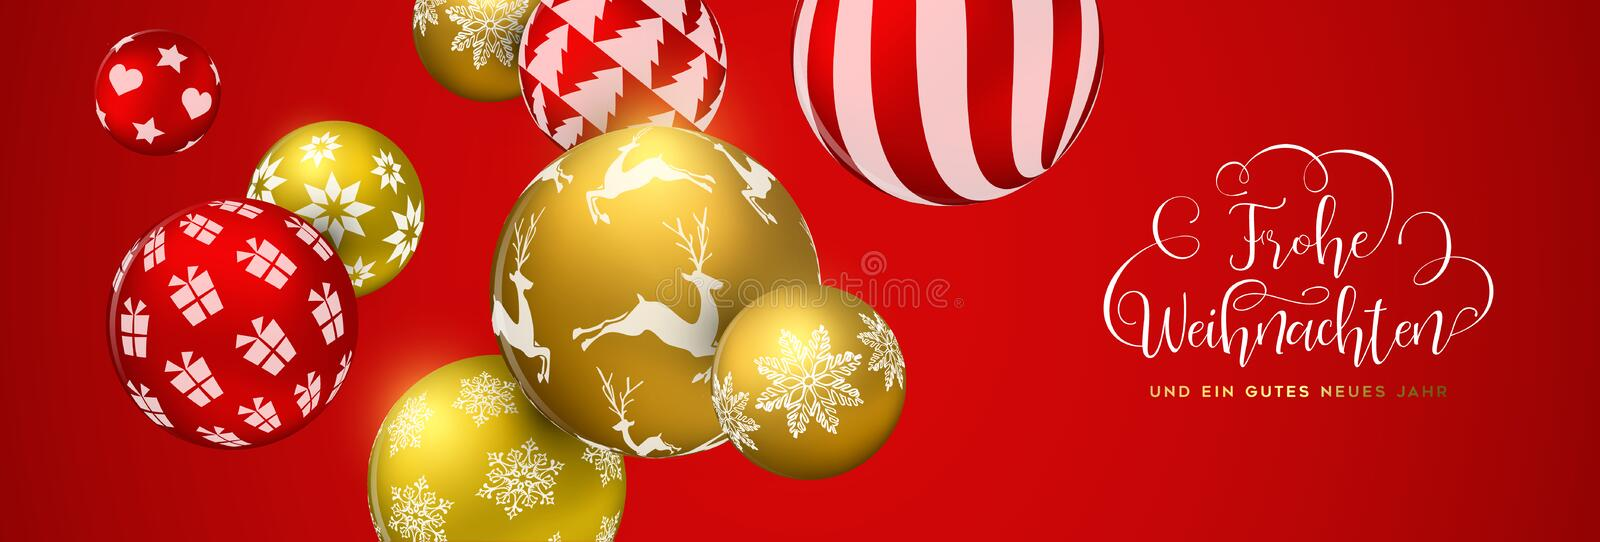 How Do You Say Merry Christmas In German.Merry Christmas In German Language Stock Vector